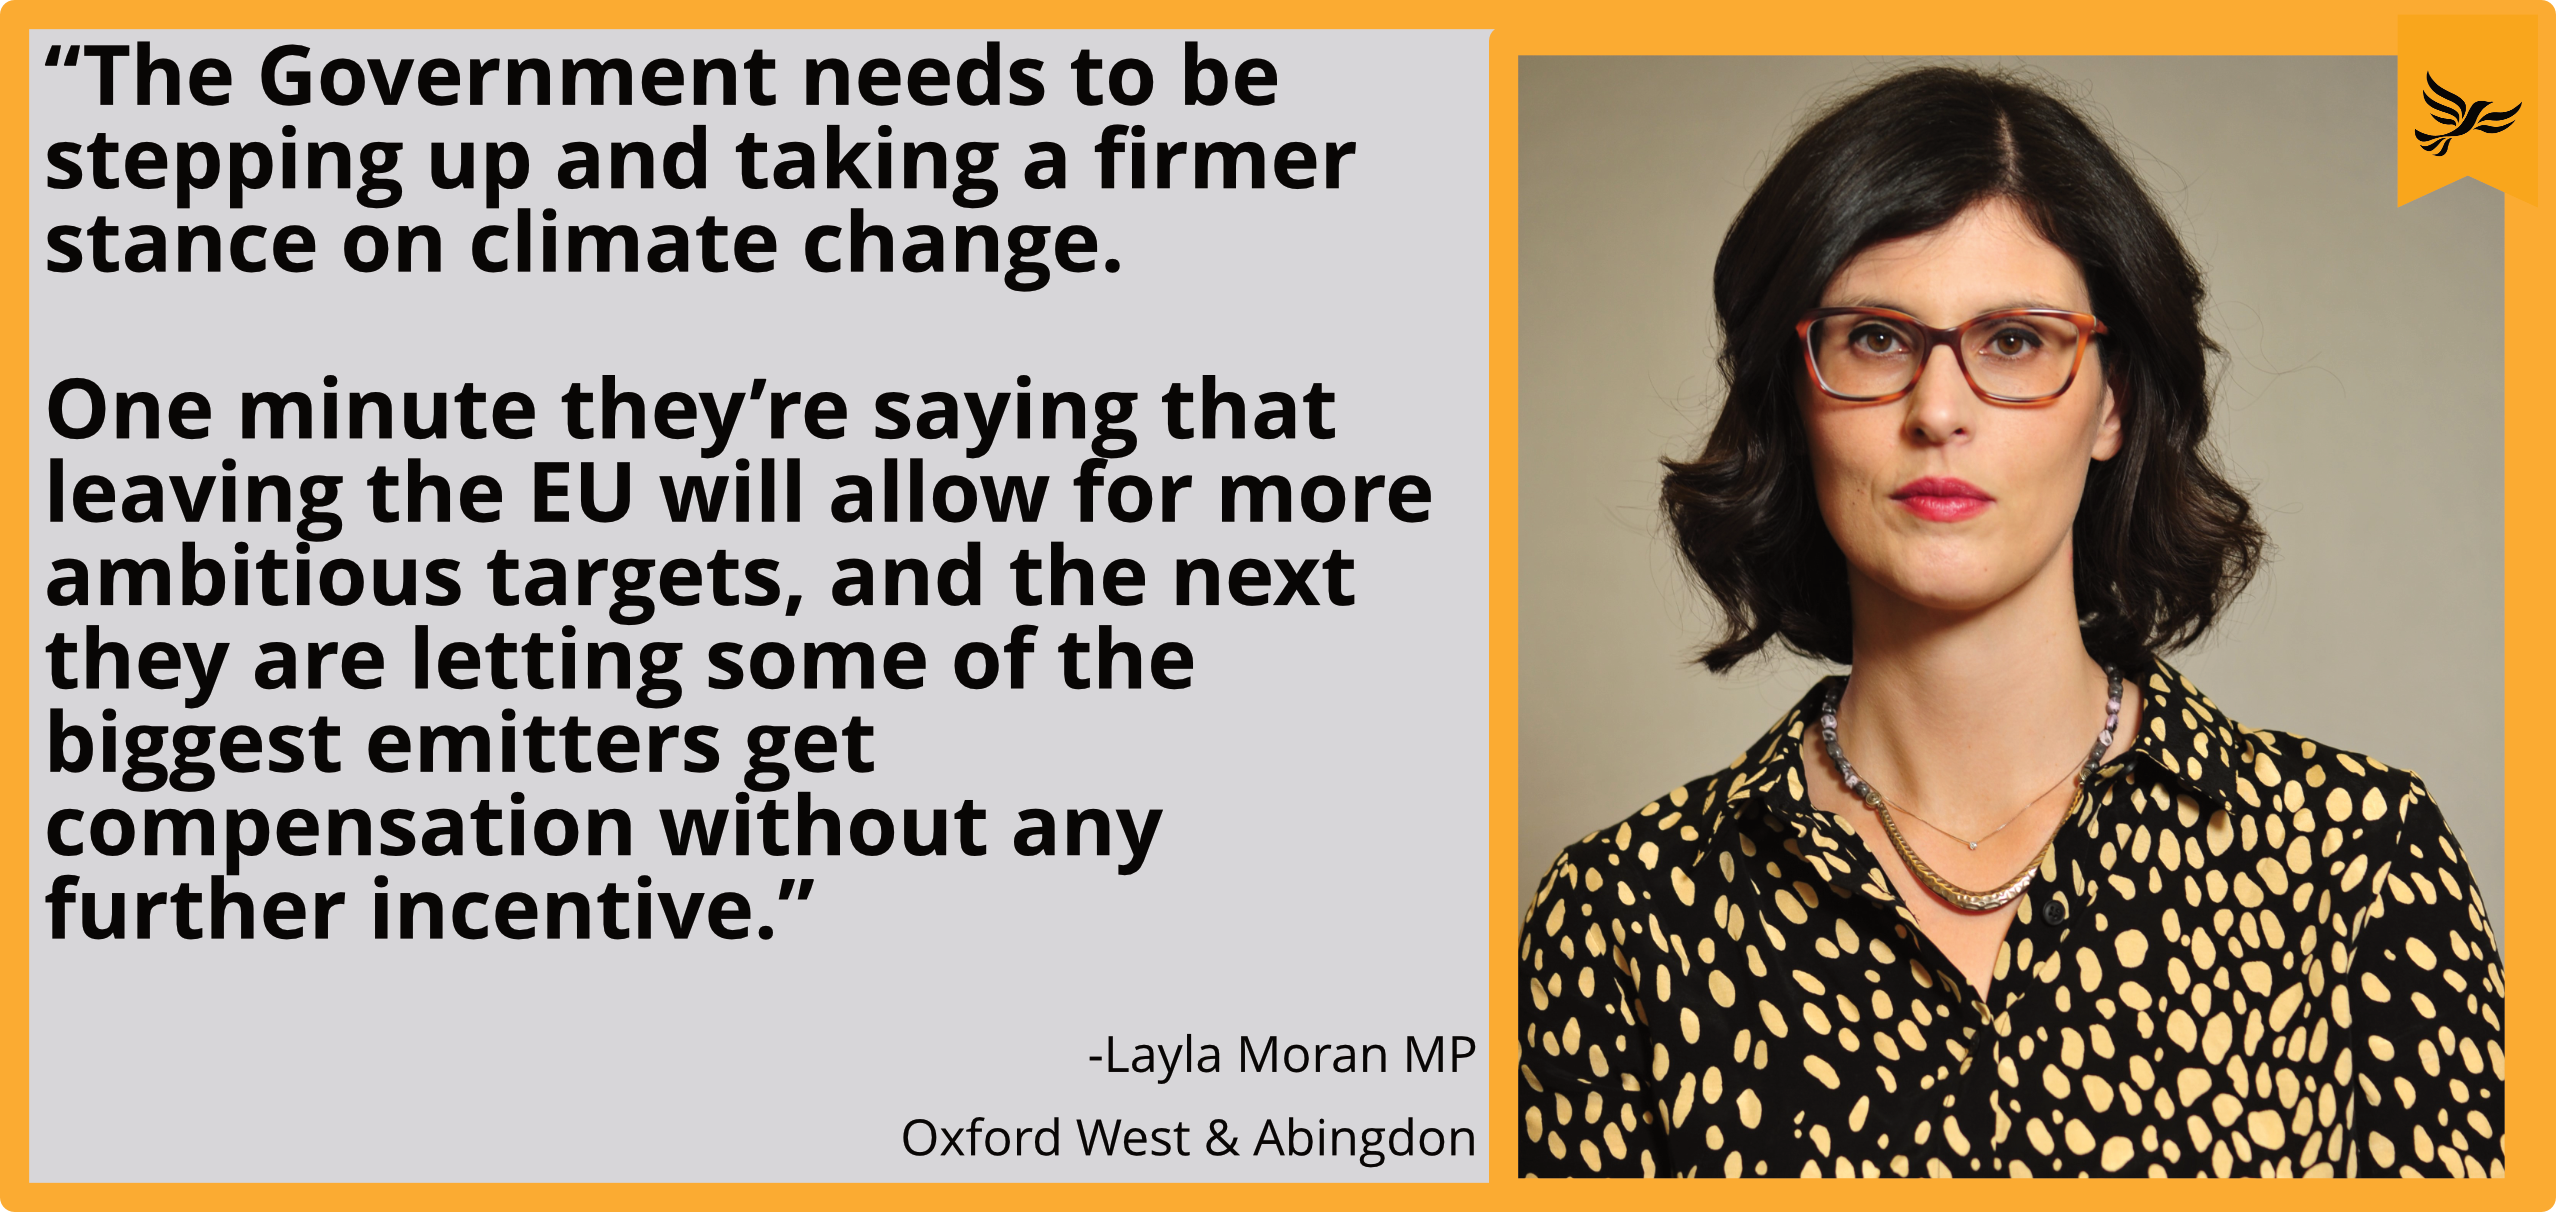 """The Government needs to be stepping up and taking a firmer stance on climate change. One minute they're saying that leaving the EU will allow for more ambitious targets, and the next they are letting some of the biggest emitters get compensation without any further incentive."